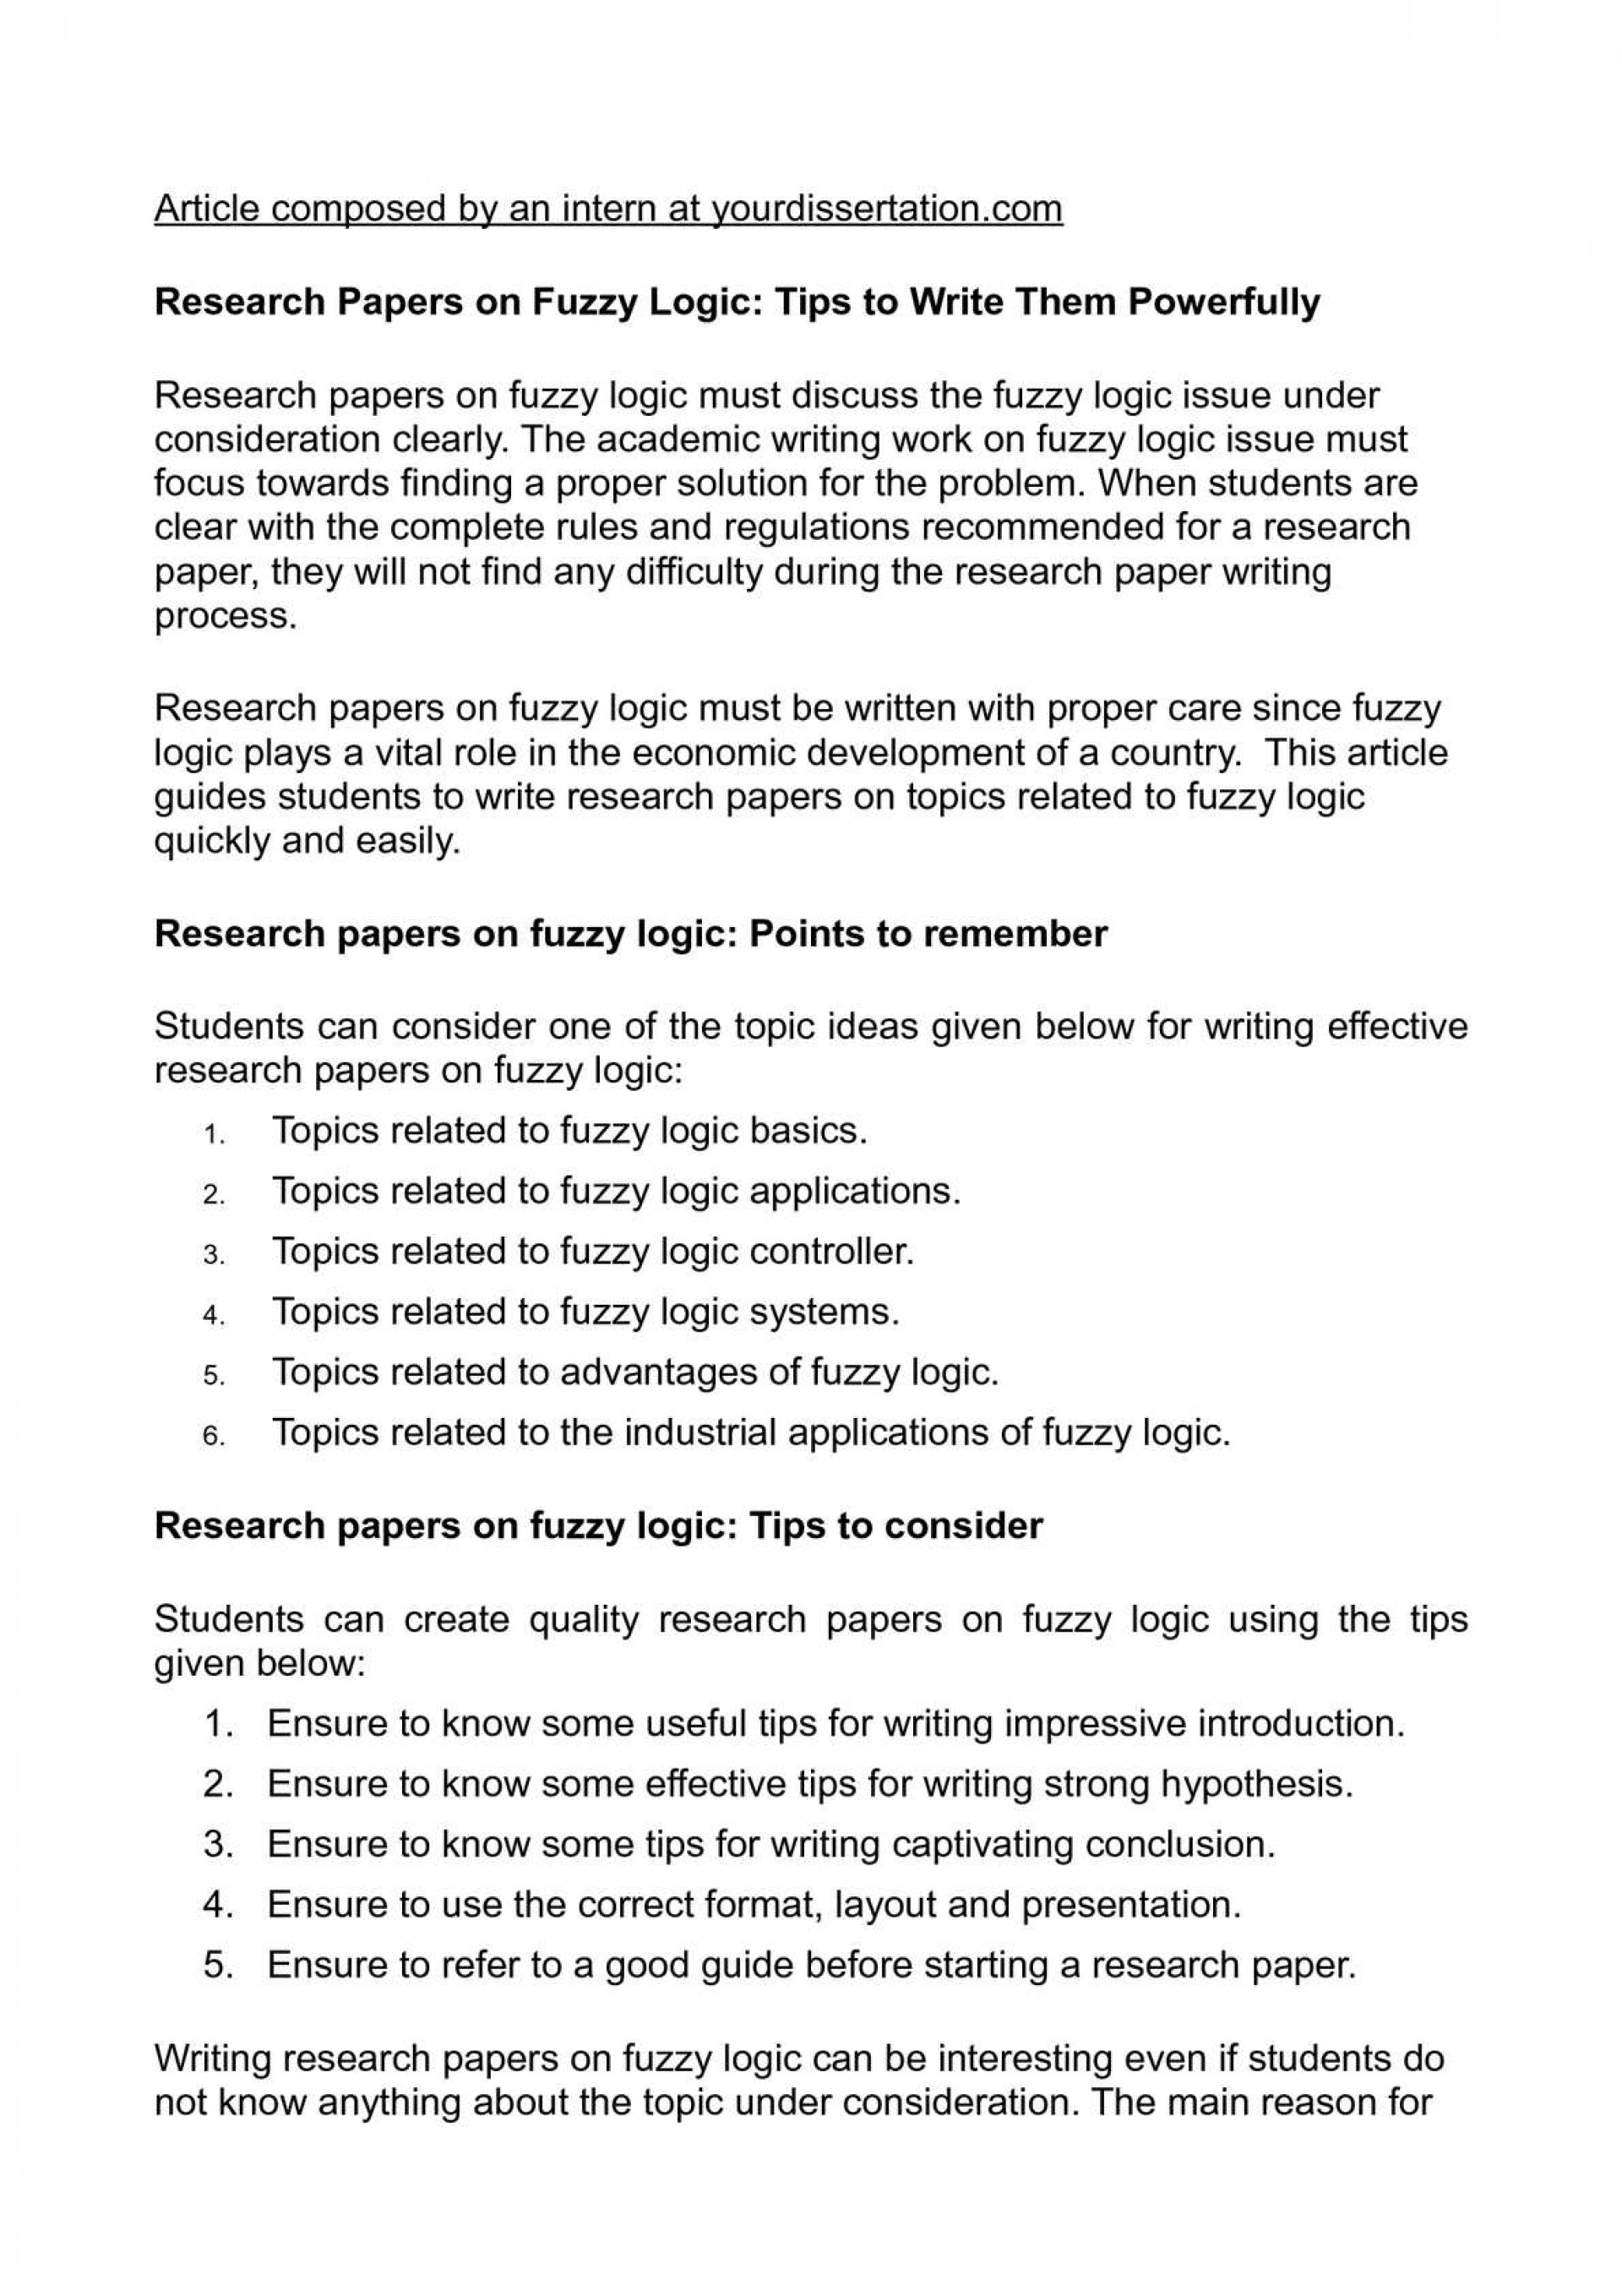 002 P1 Tips For Writing Researchs Unforgettable Research Papers A Paper Pdf In College 1920